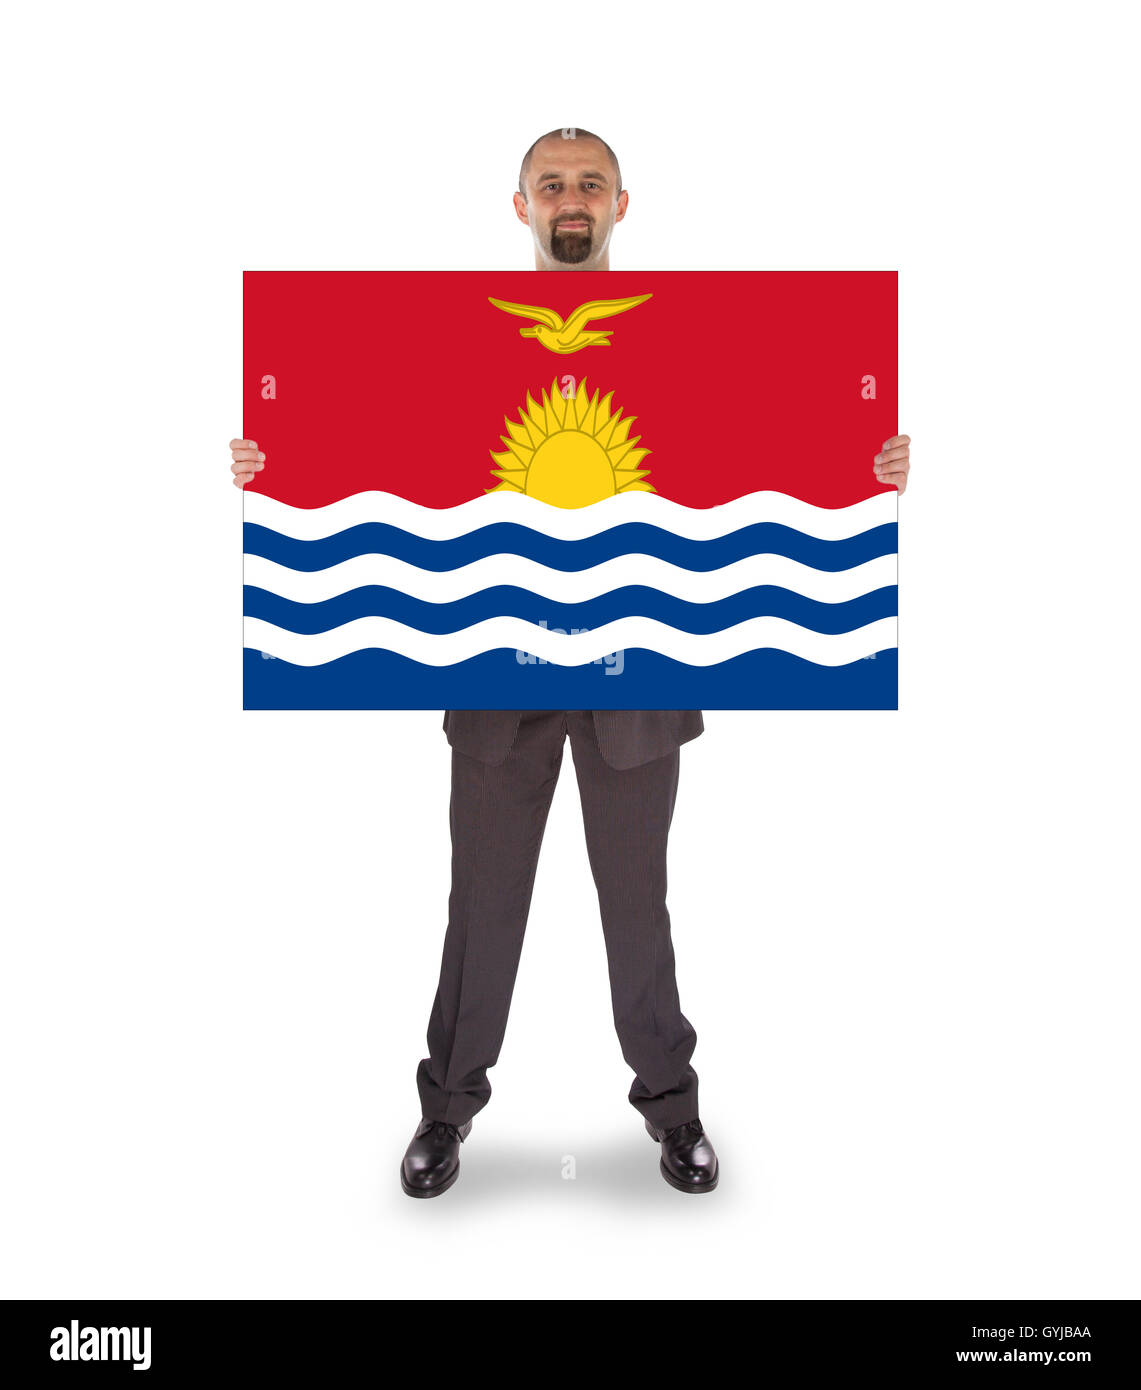 Smiling businessman holding a big card or flag - Stock Image